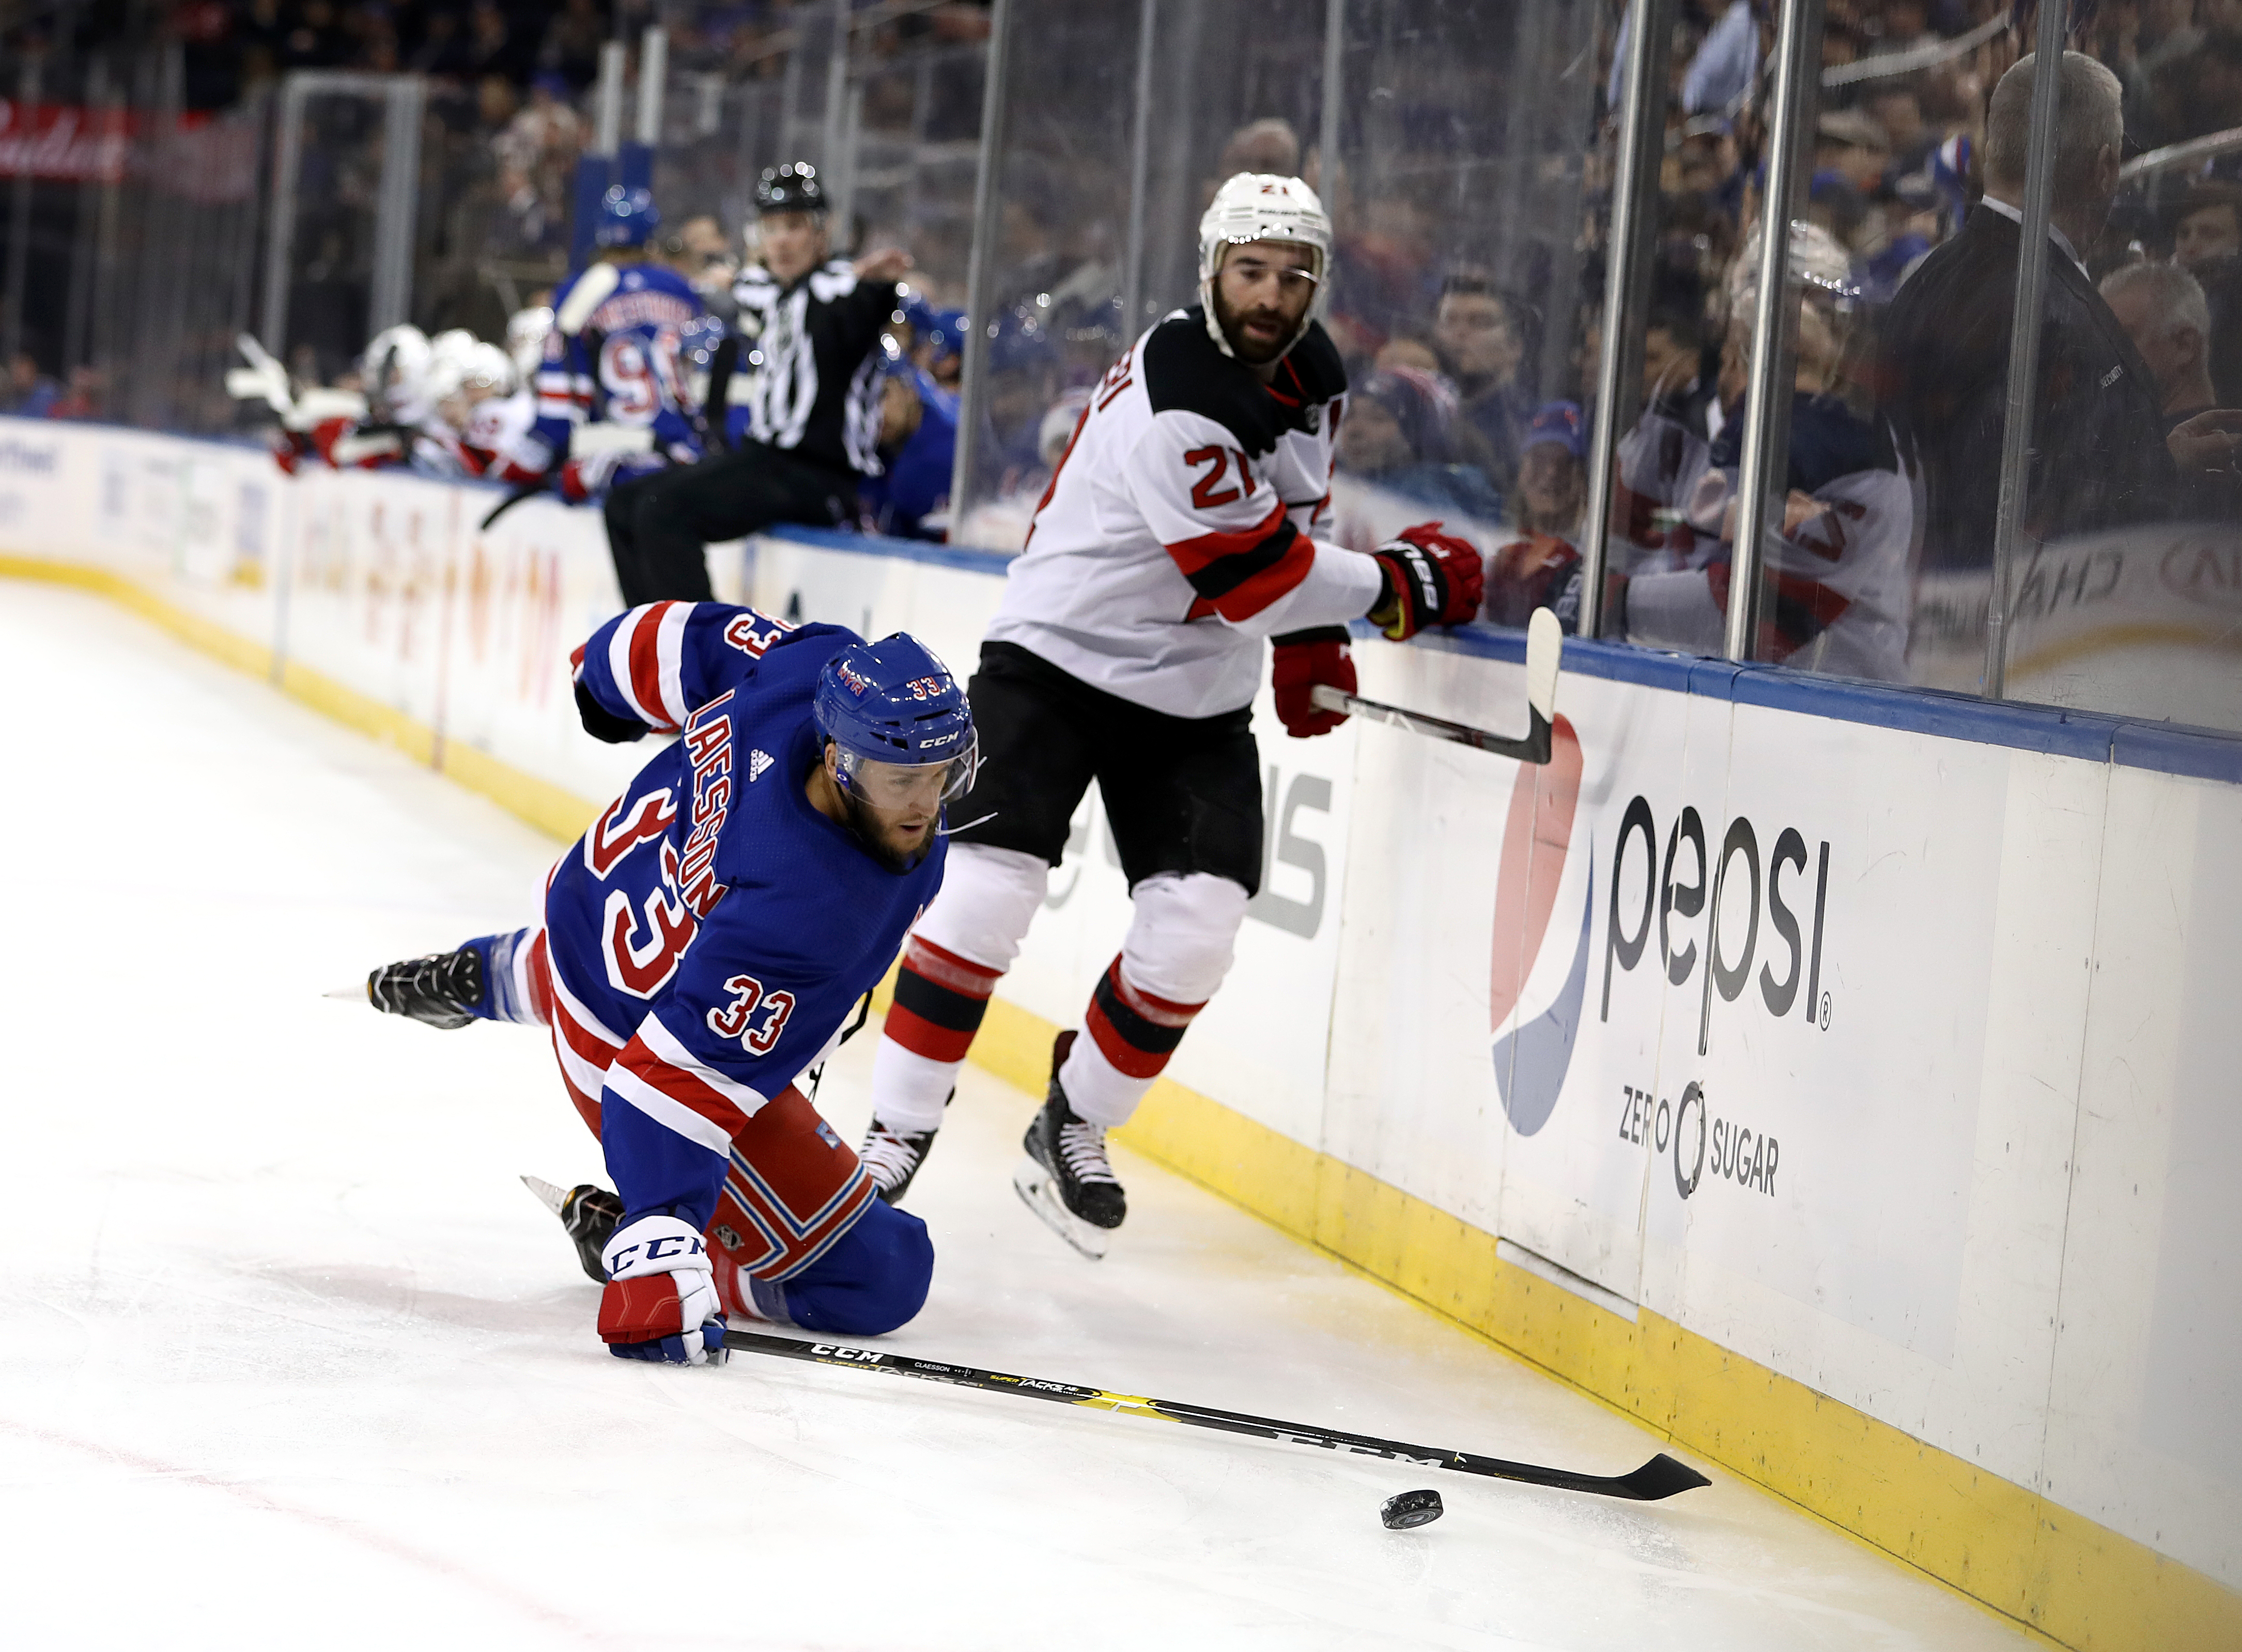 596c9bfbac9 Game Preview #80 of 82: New Jersey Devils vs. New York Rangers - All ...